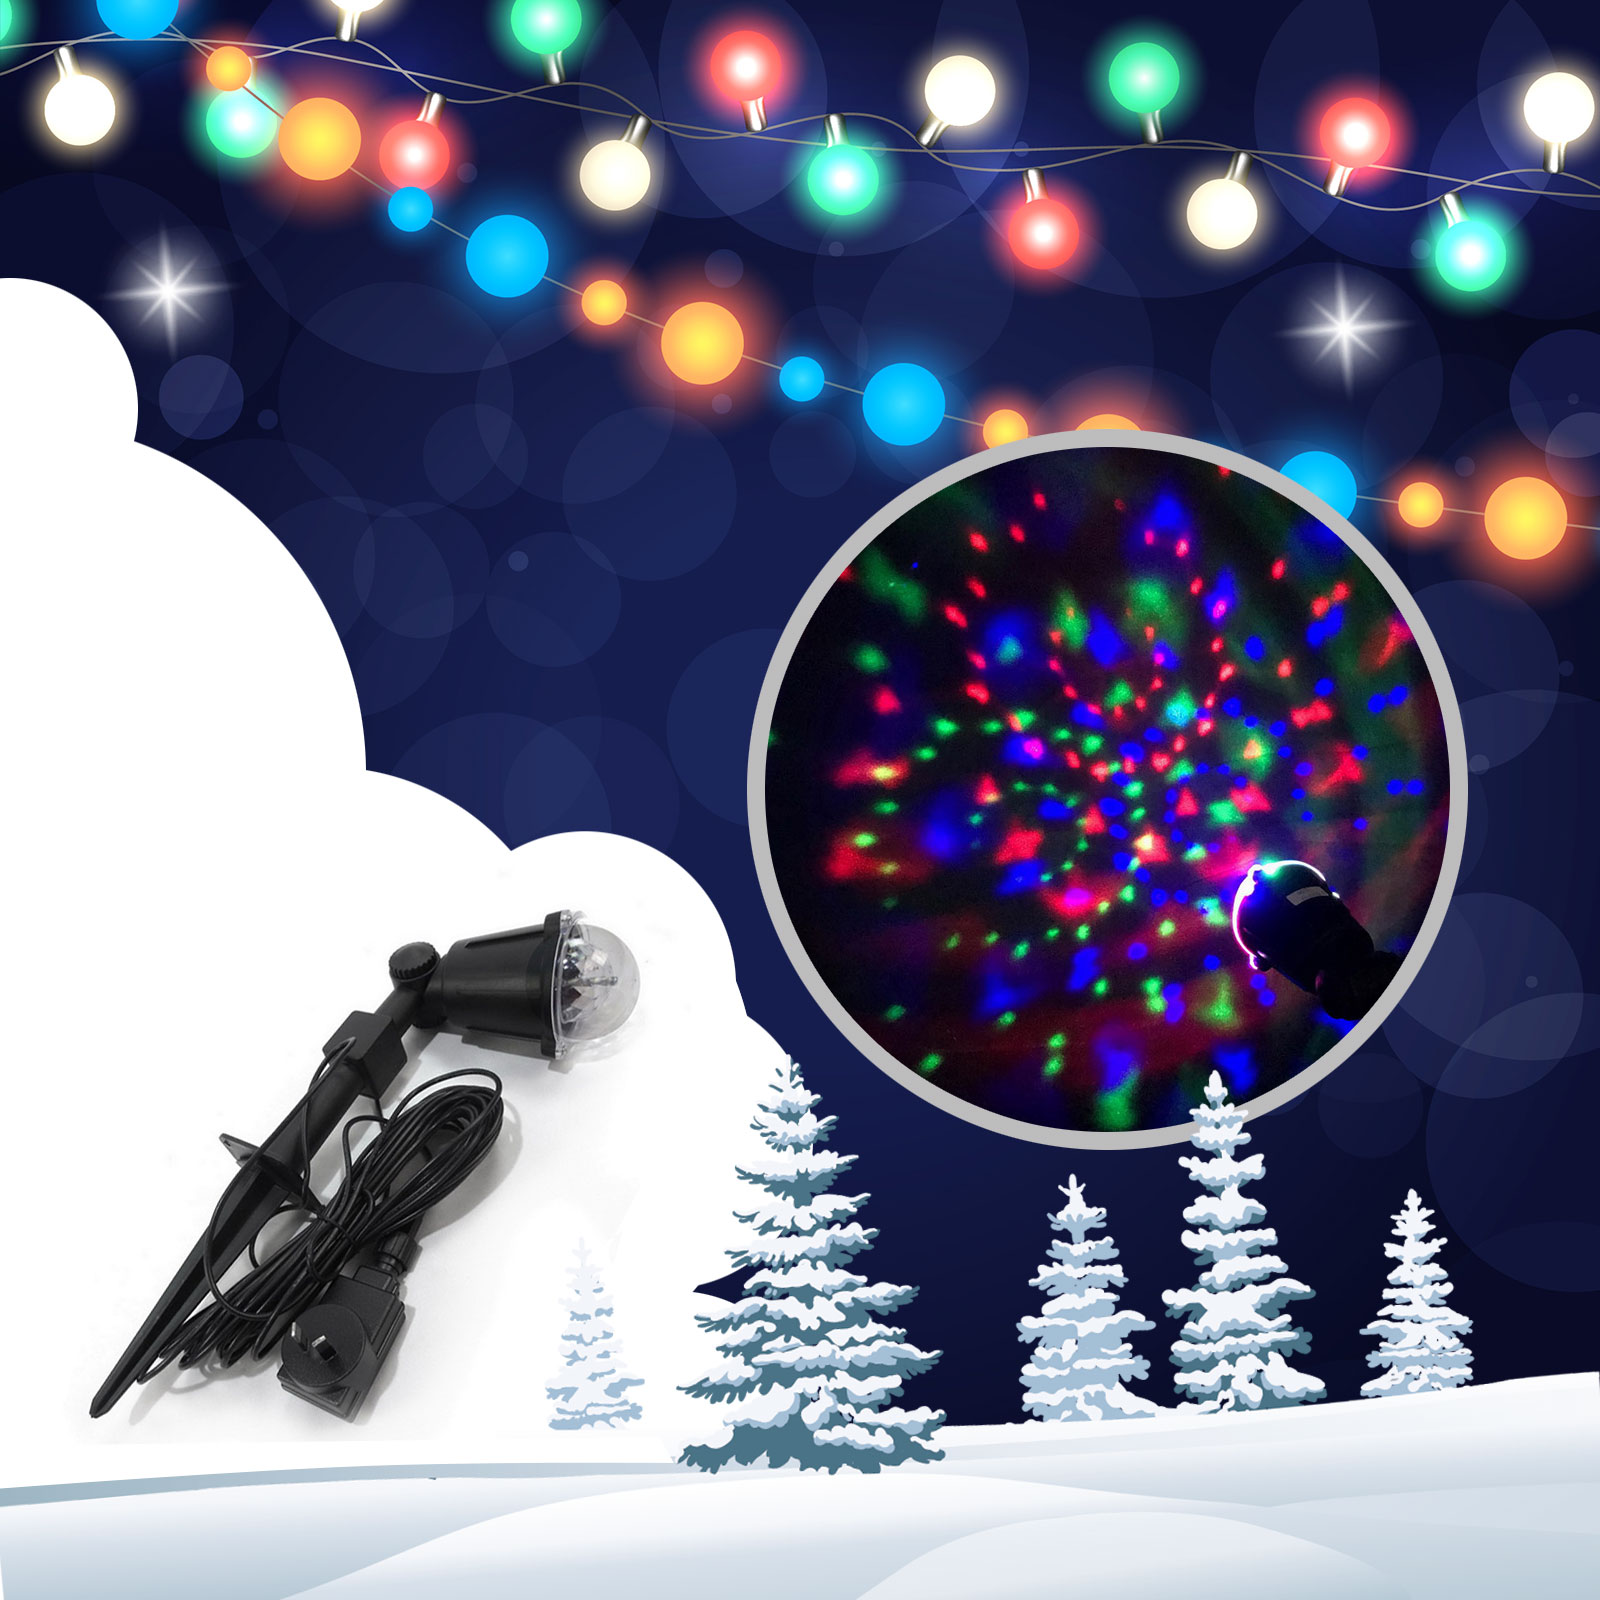 Christmas Lights Outdoor.Christmas Lights Outdoor Led Controllable Flashing Rope 4 In 1 Star Multi Colour